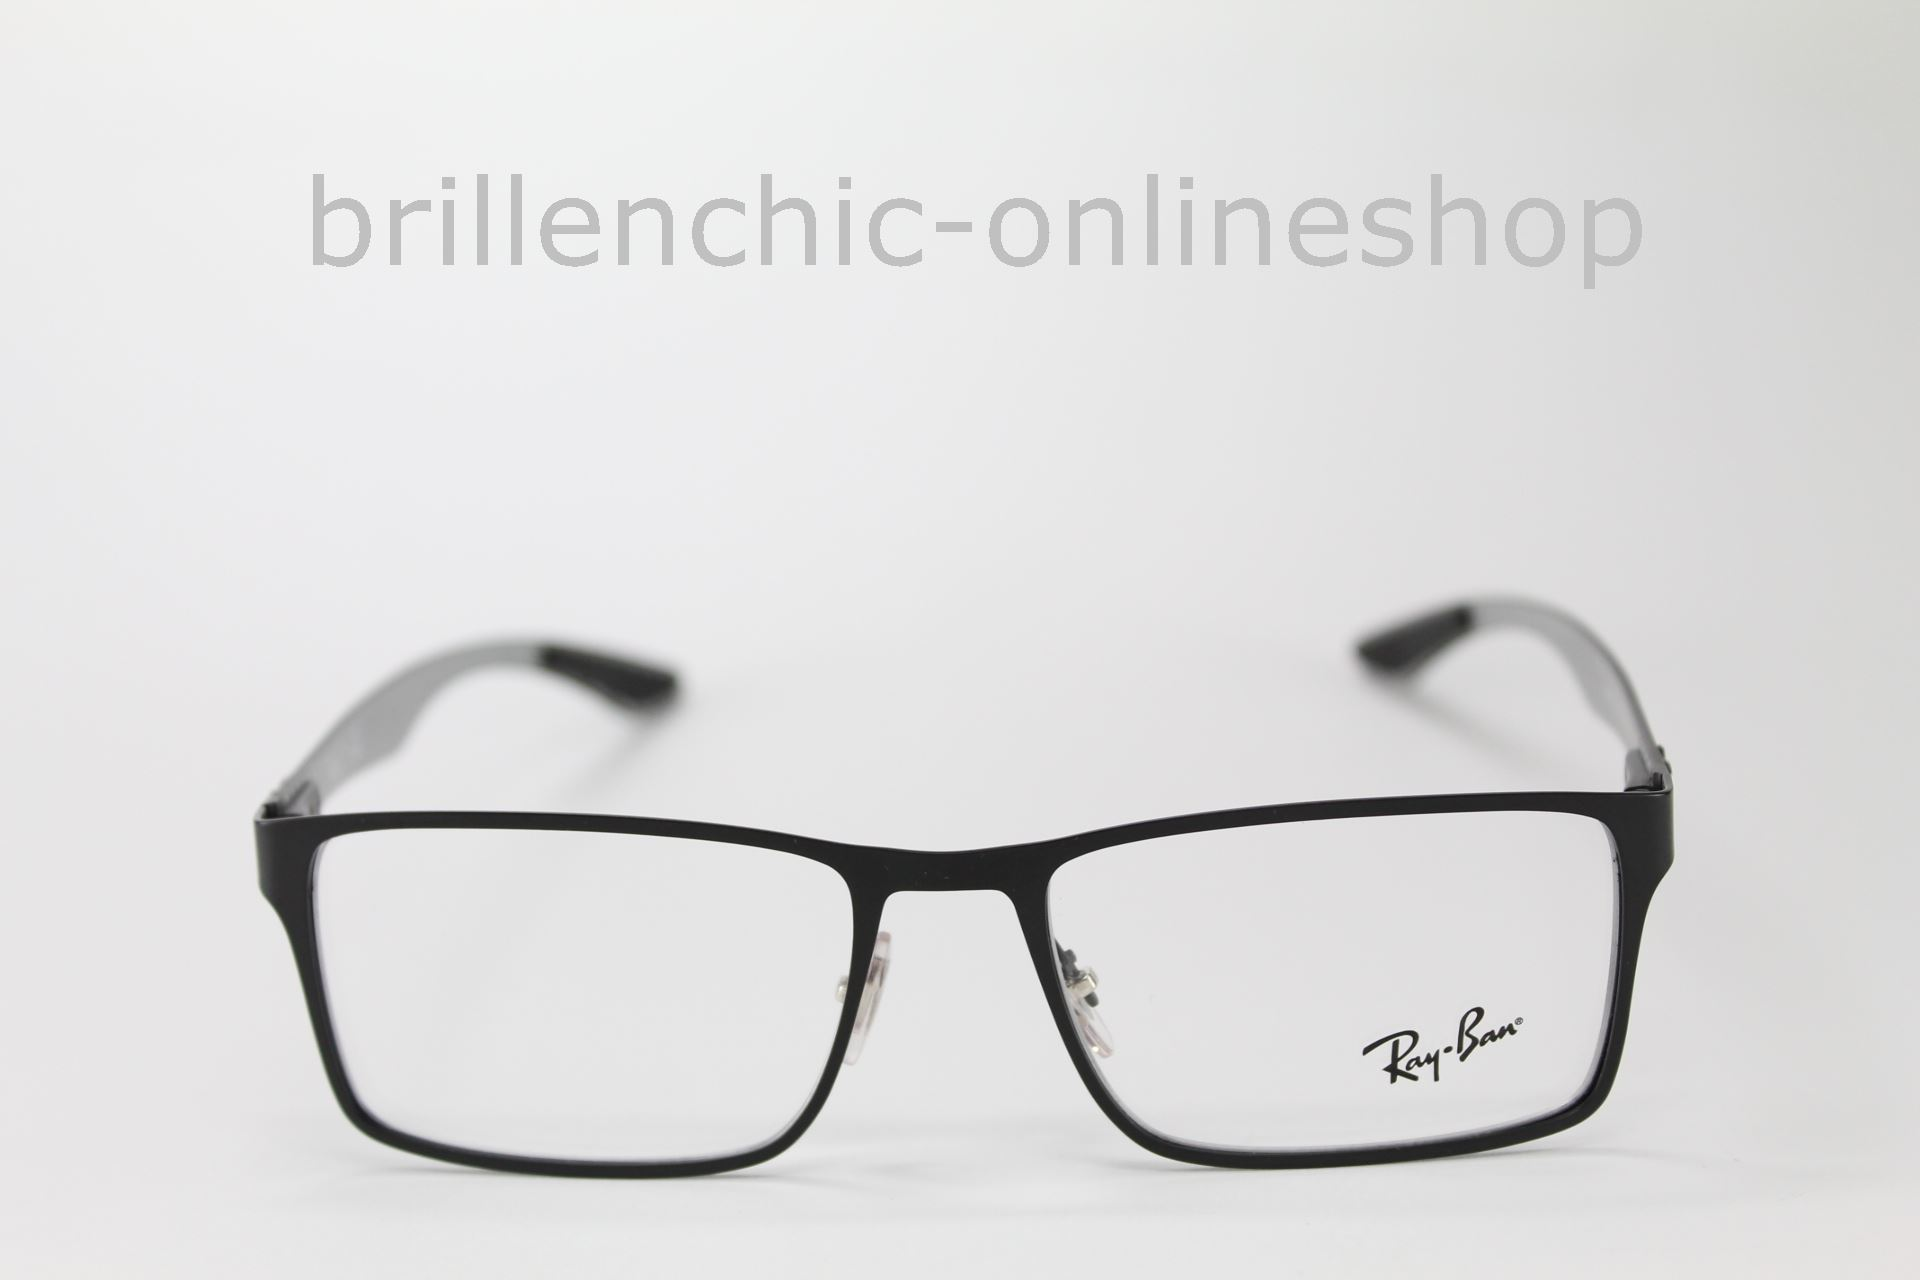 0e24fca4799 Brillenchic-onlineshop in Berlin - Ray Ban RB 8415 2503 CARBON